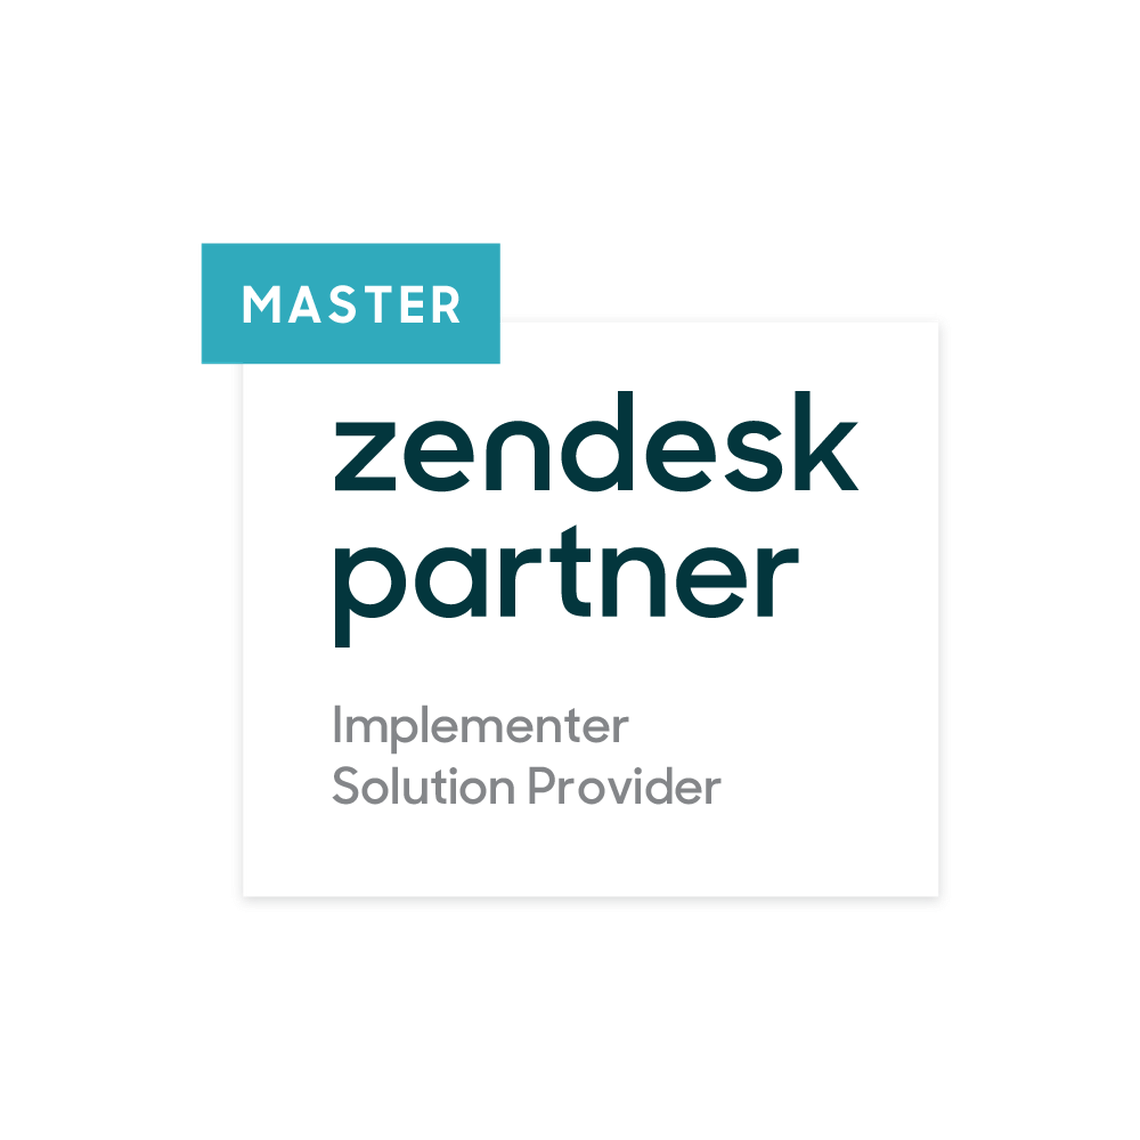 helphouse.io is Zendesk Master Partner